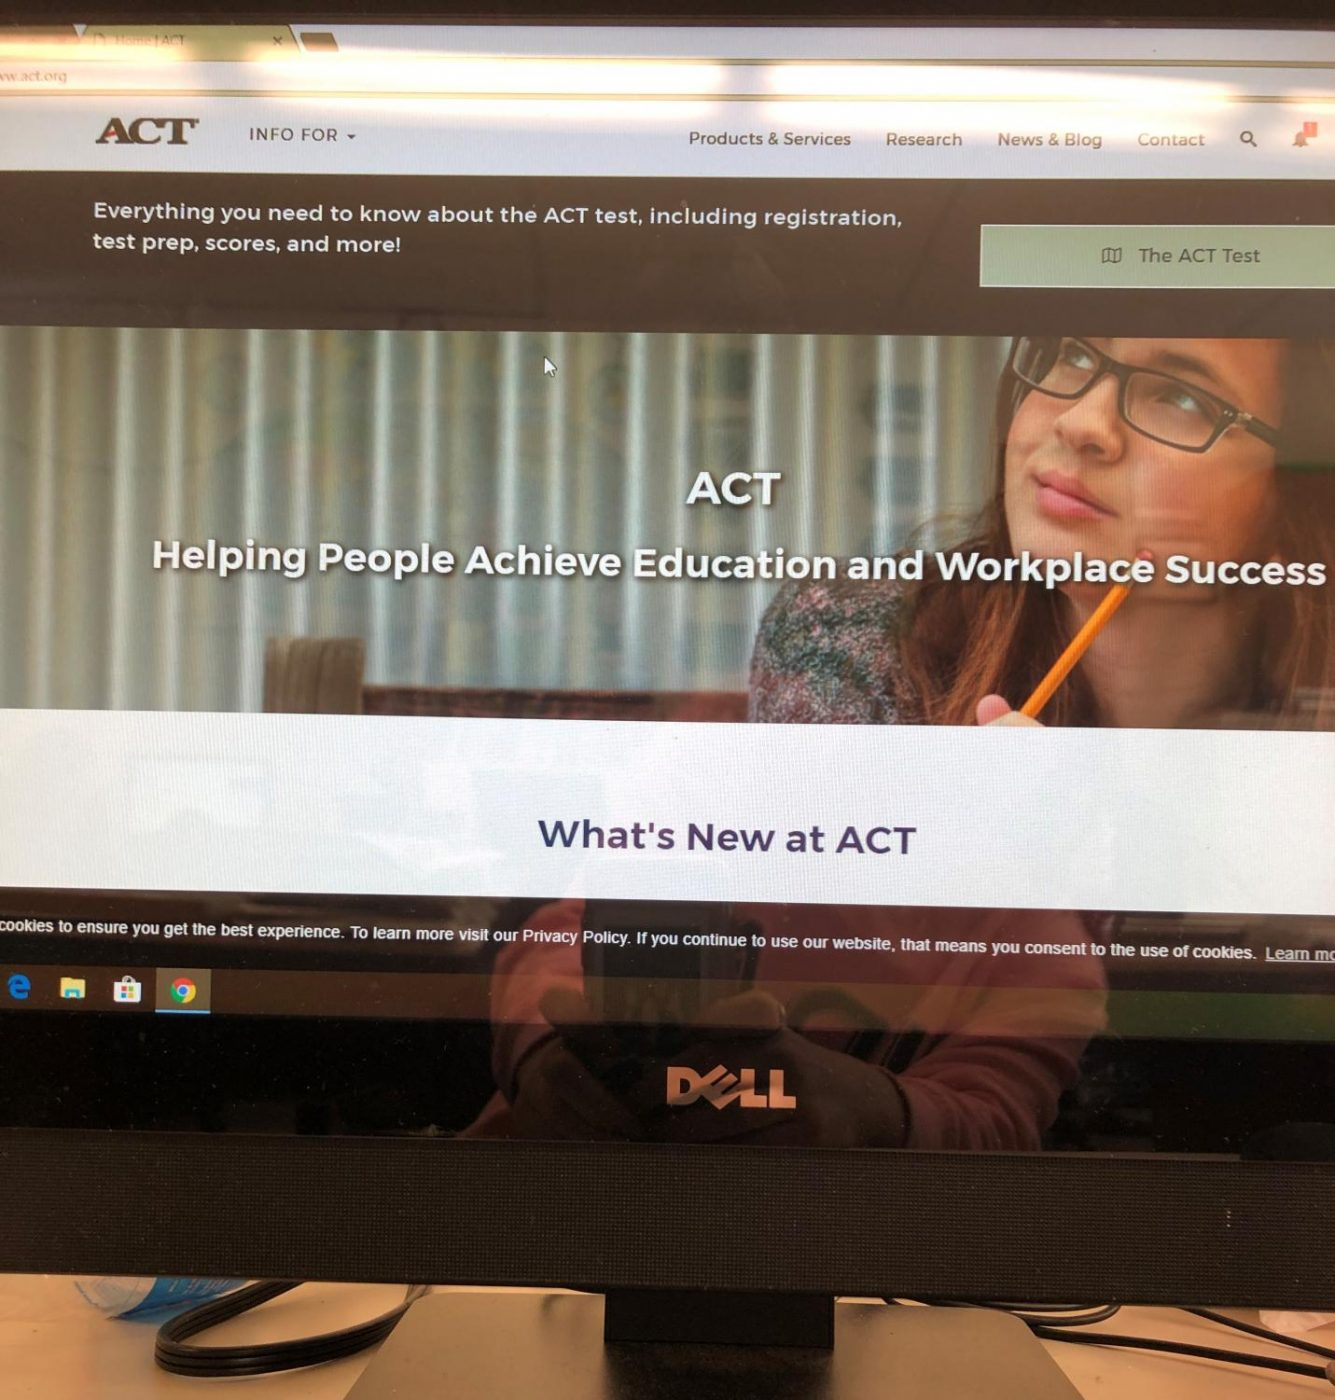 The ACT website, which offers students information about registration and scores.